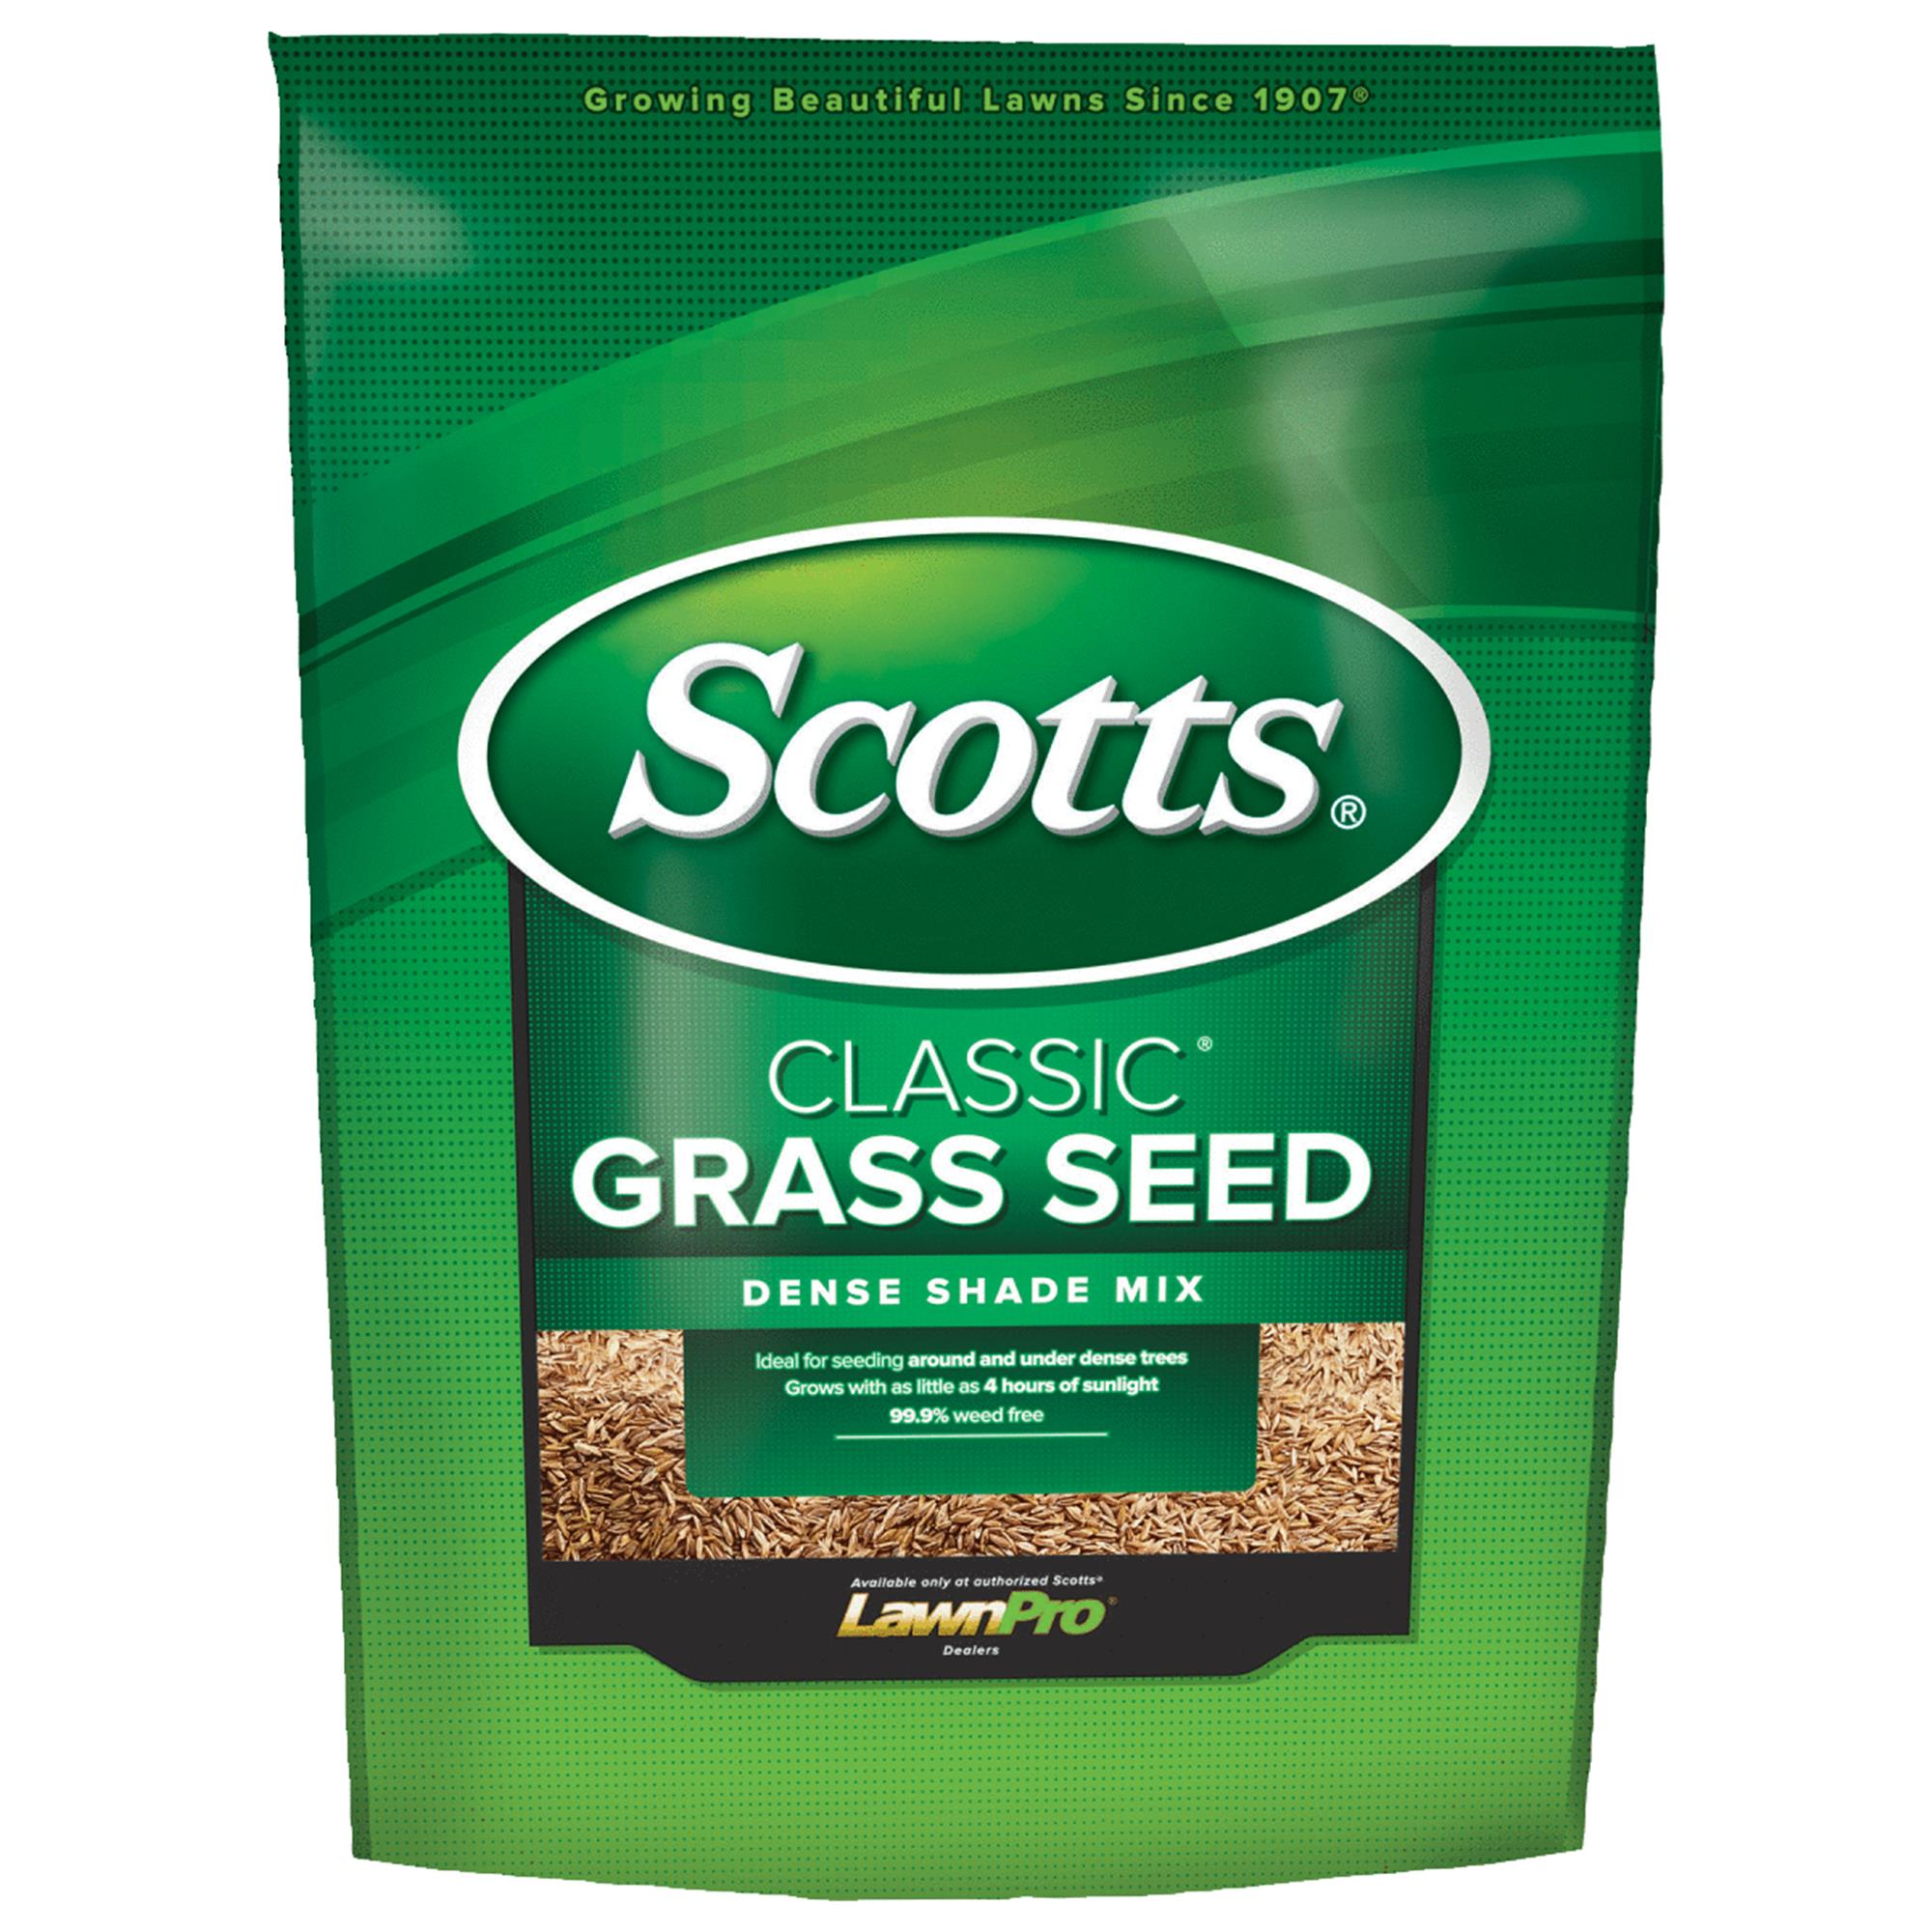 Scotts Classic Dense Shade Grass Seed